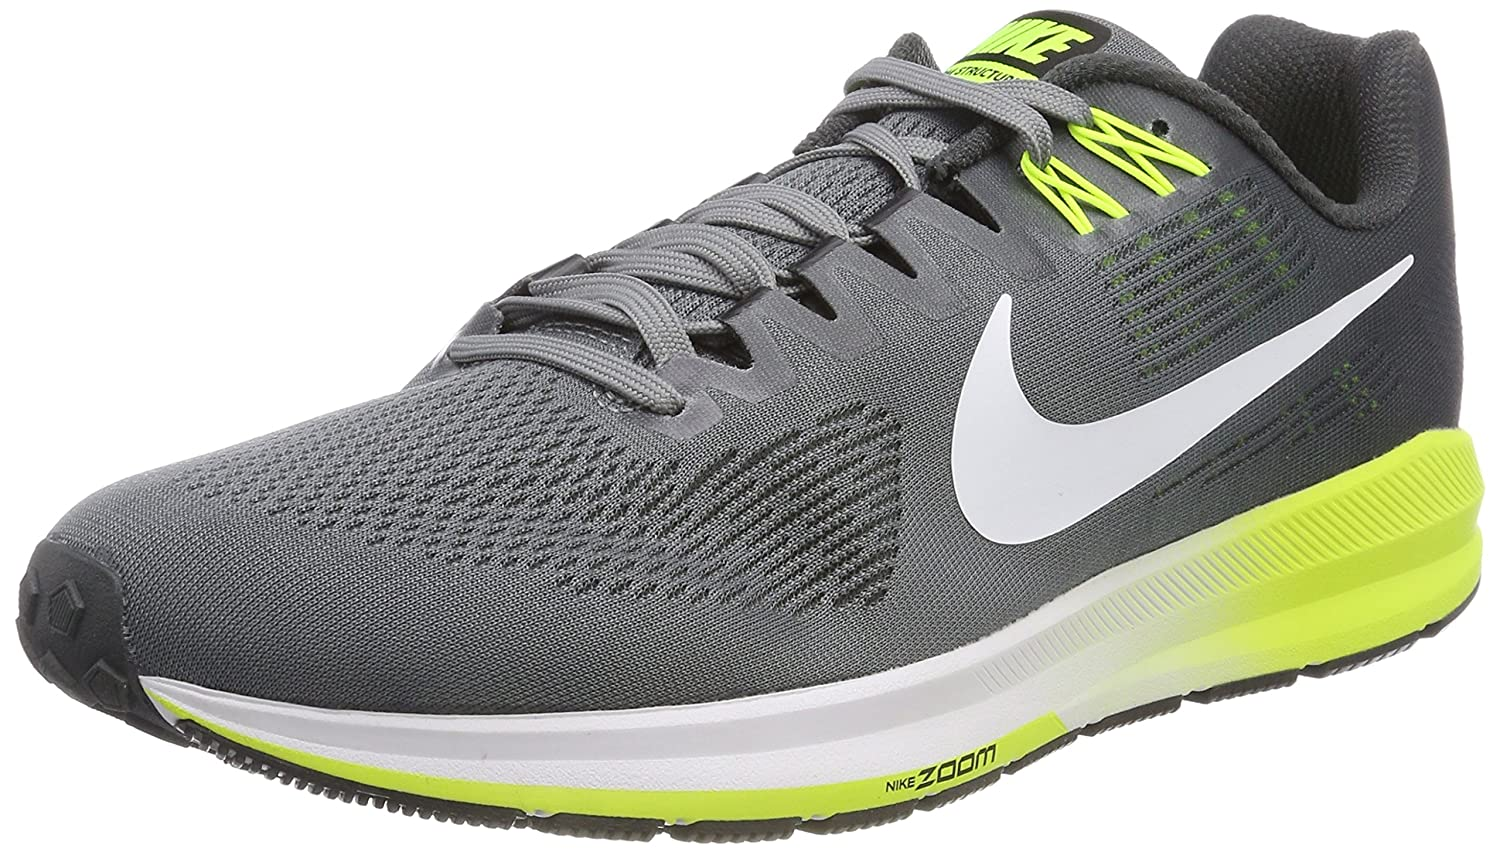 NIKE Men's Air Zoom Structure 21 Running Shoe Wide (2E) Cool Grey/White-Anthracite-Volt B0777K2HD5 8.5 D(M) US|Cool Grey/White-anthracite